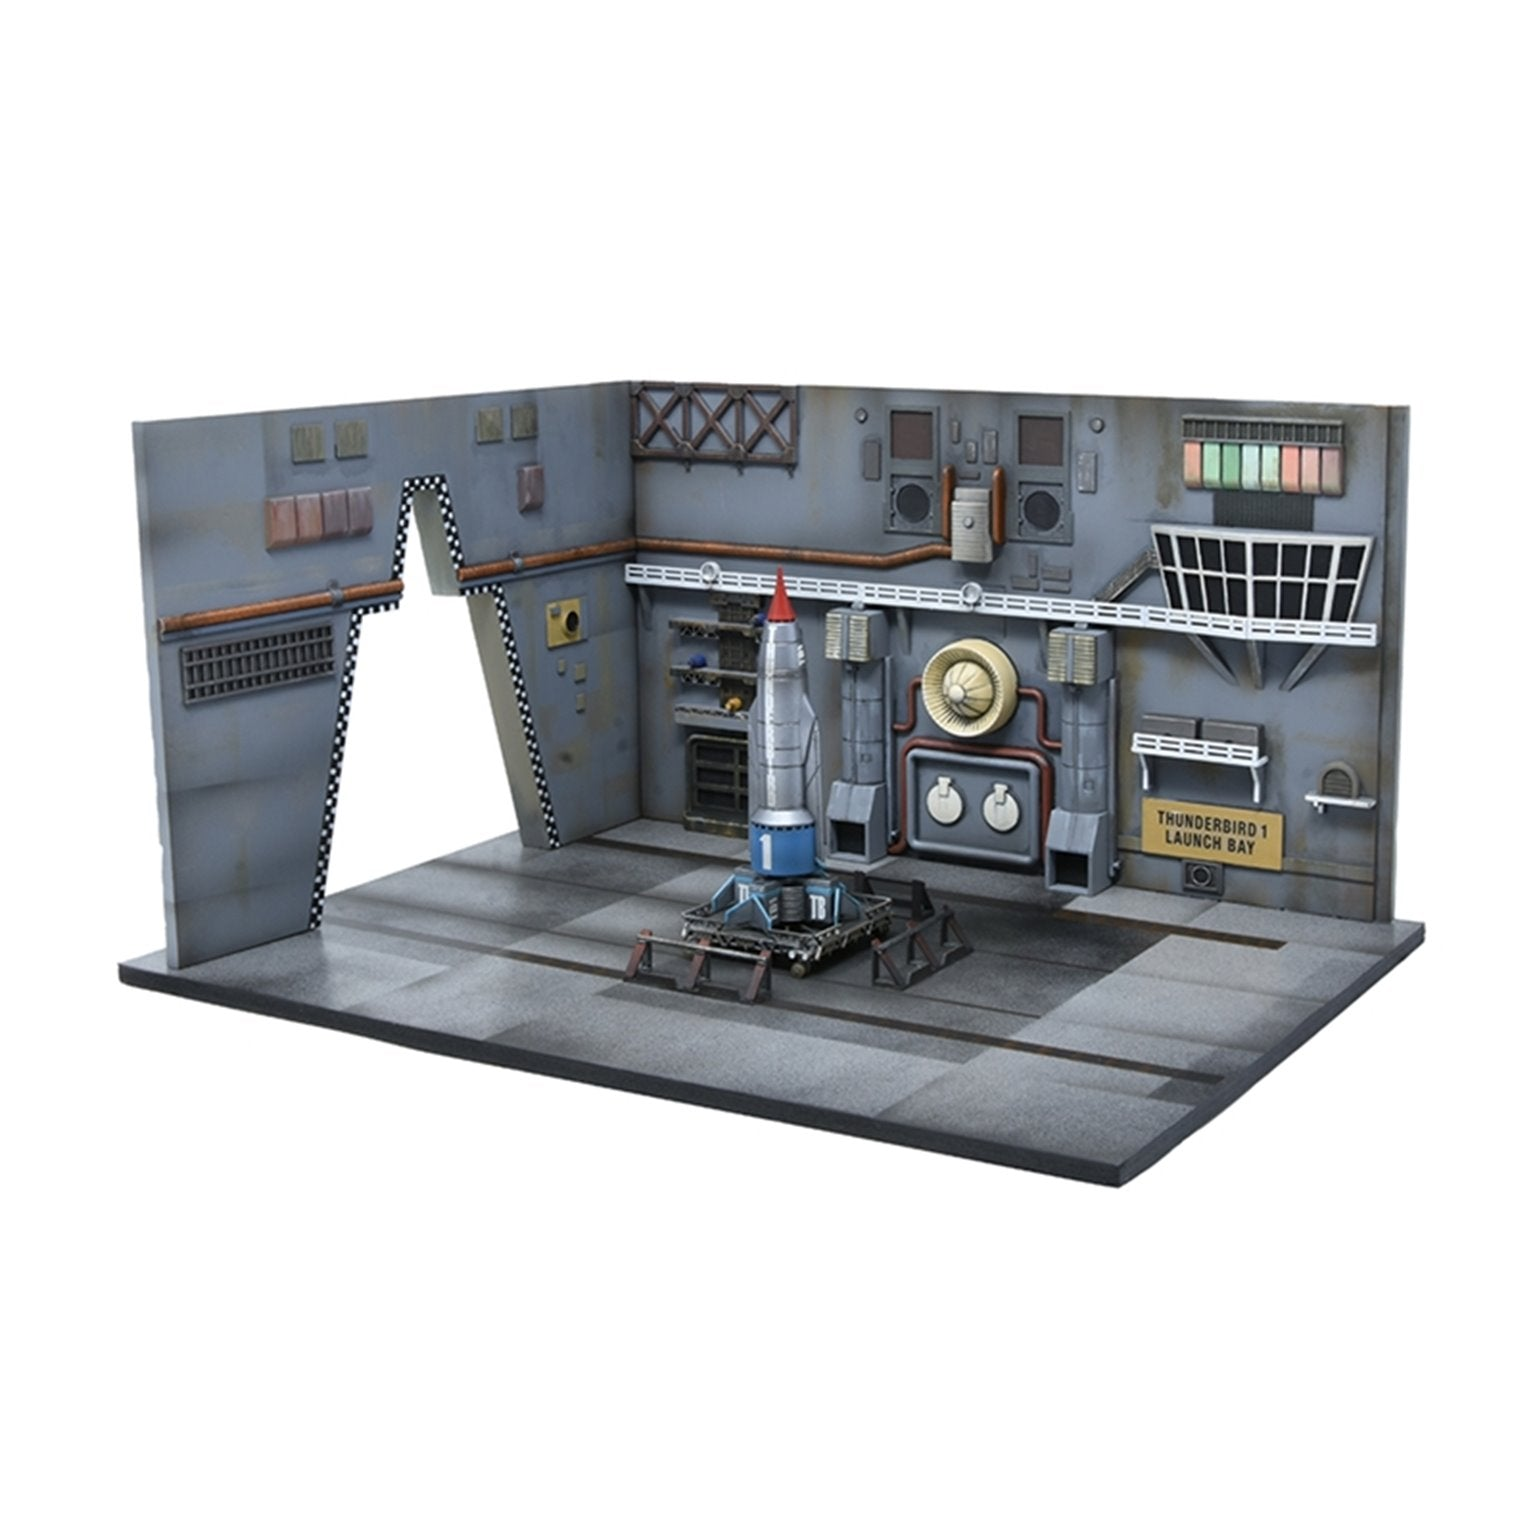 1:350 Thunderbird 1 Launch Bay Model Kit